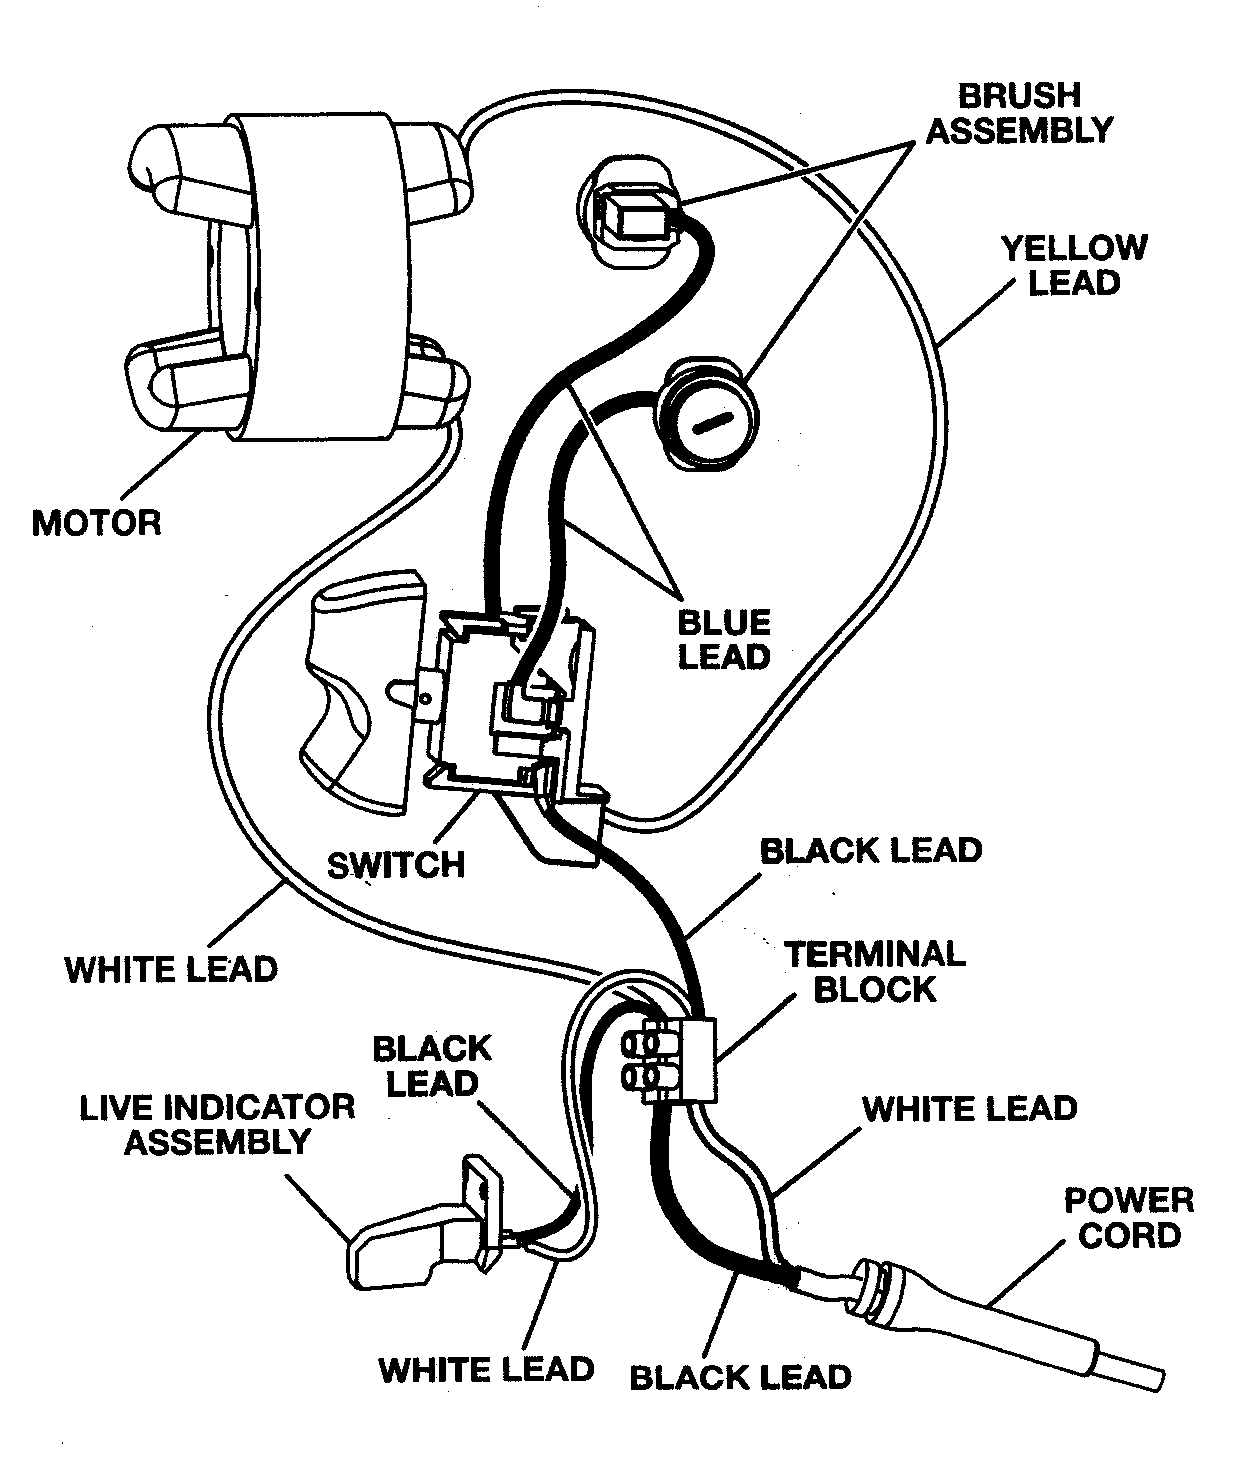 Lovely snapper riding mower wiring diagram images wiring diagram